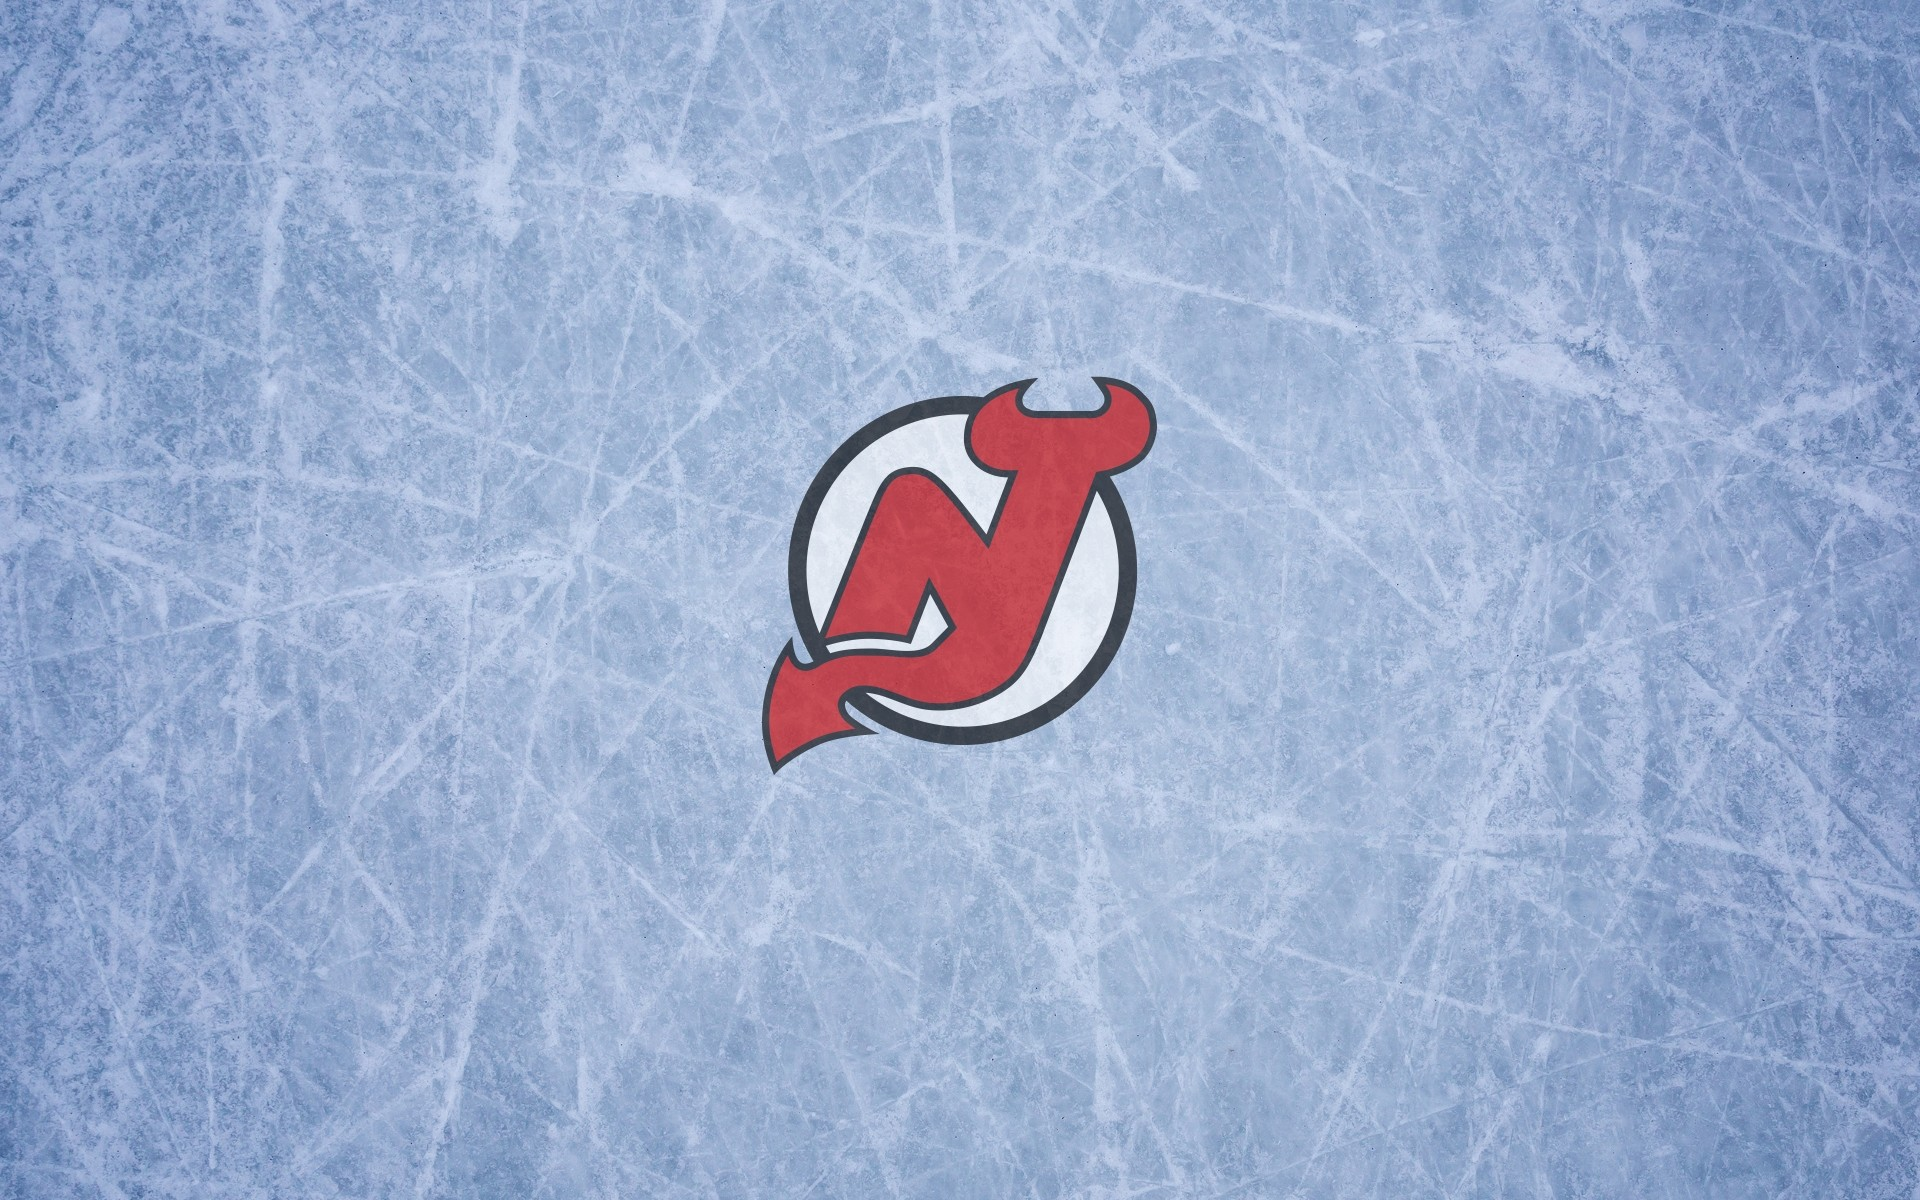 New Jersey Devils wallpaper with logo on the ice, widescreen, 1920×1200,  16×10